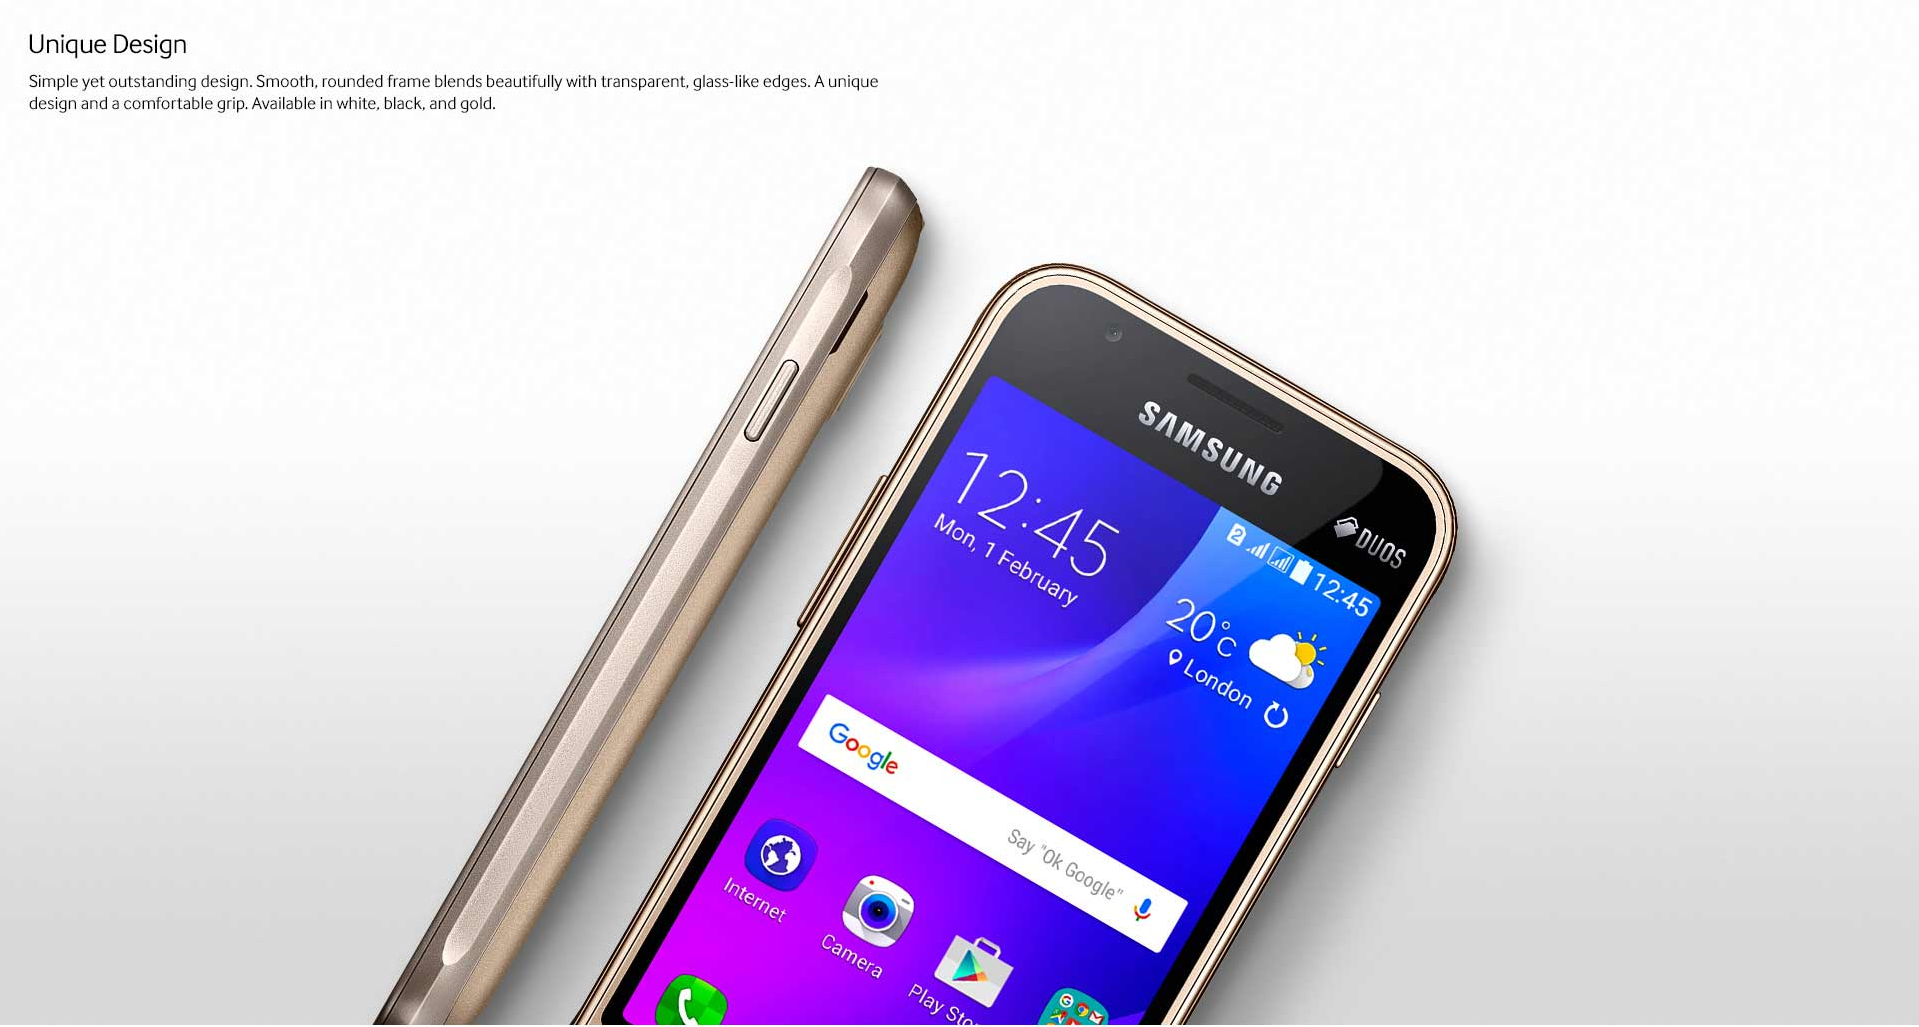 Samsung Galaxy J1 Mini design